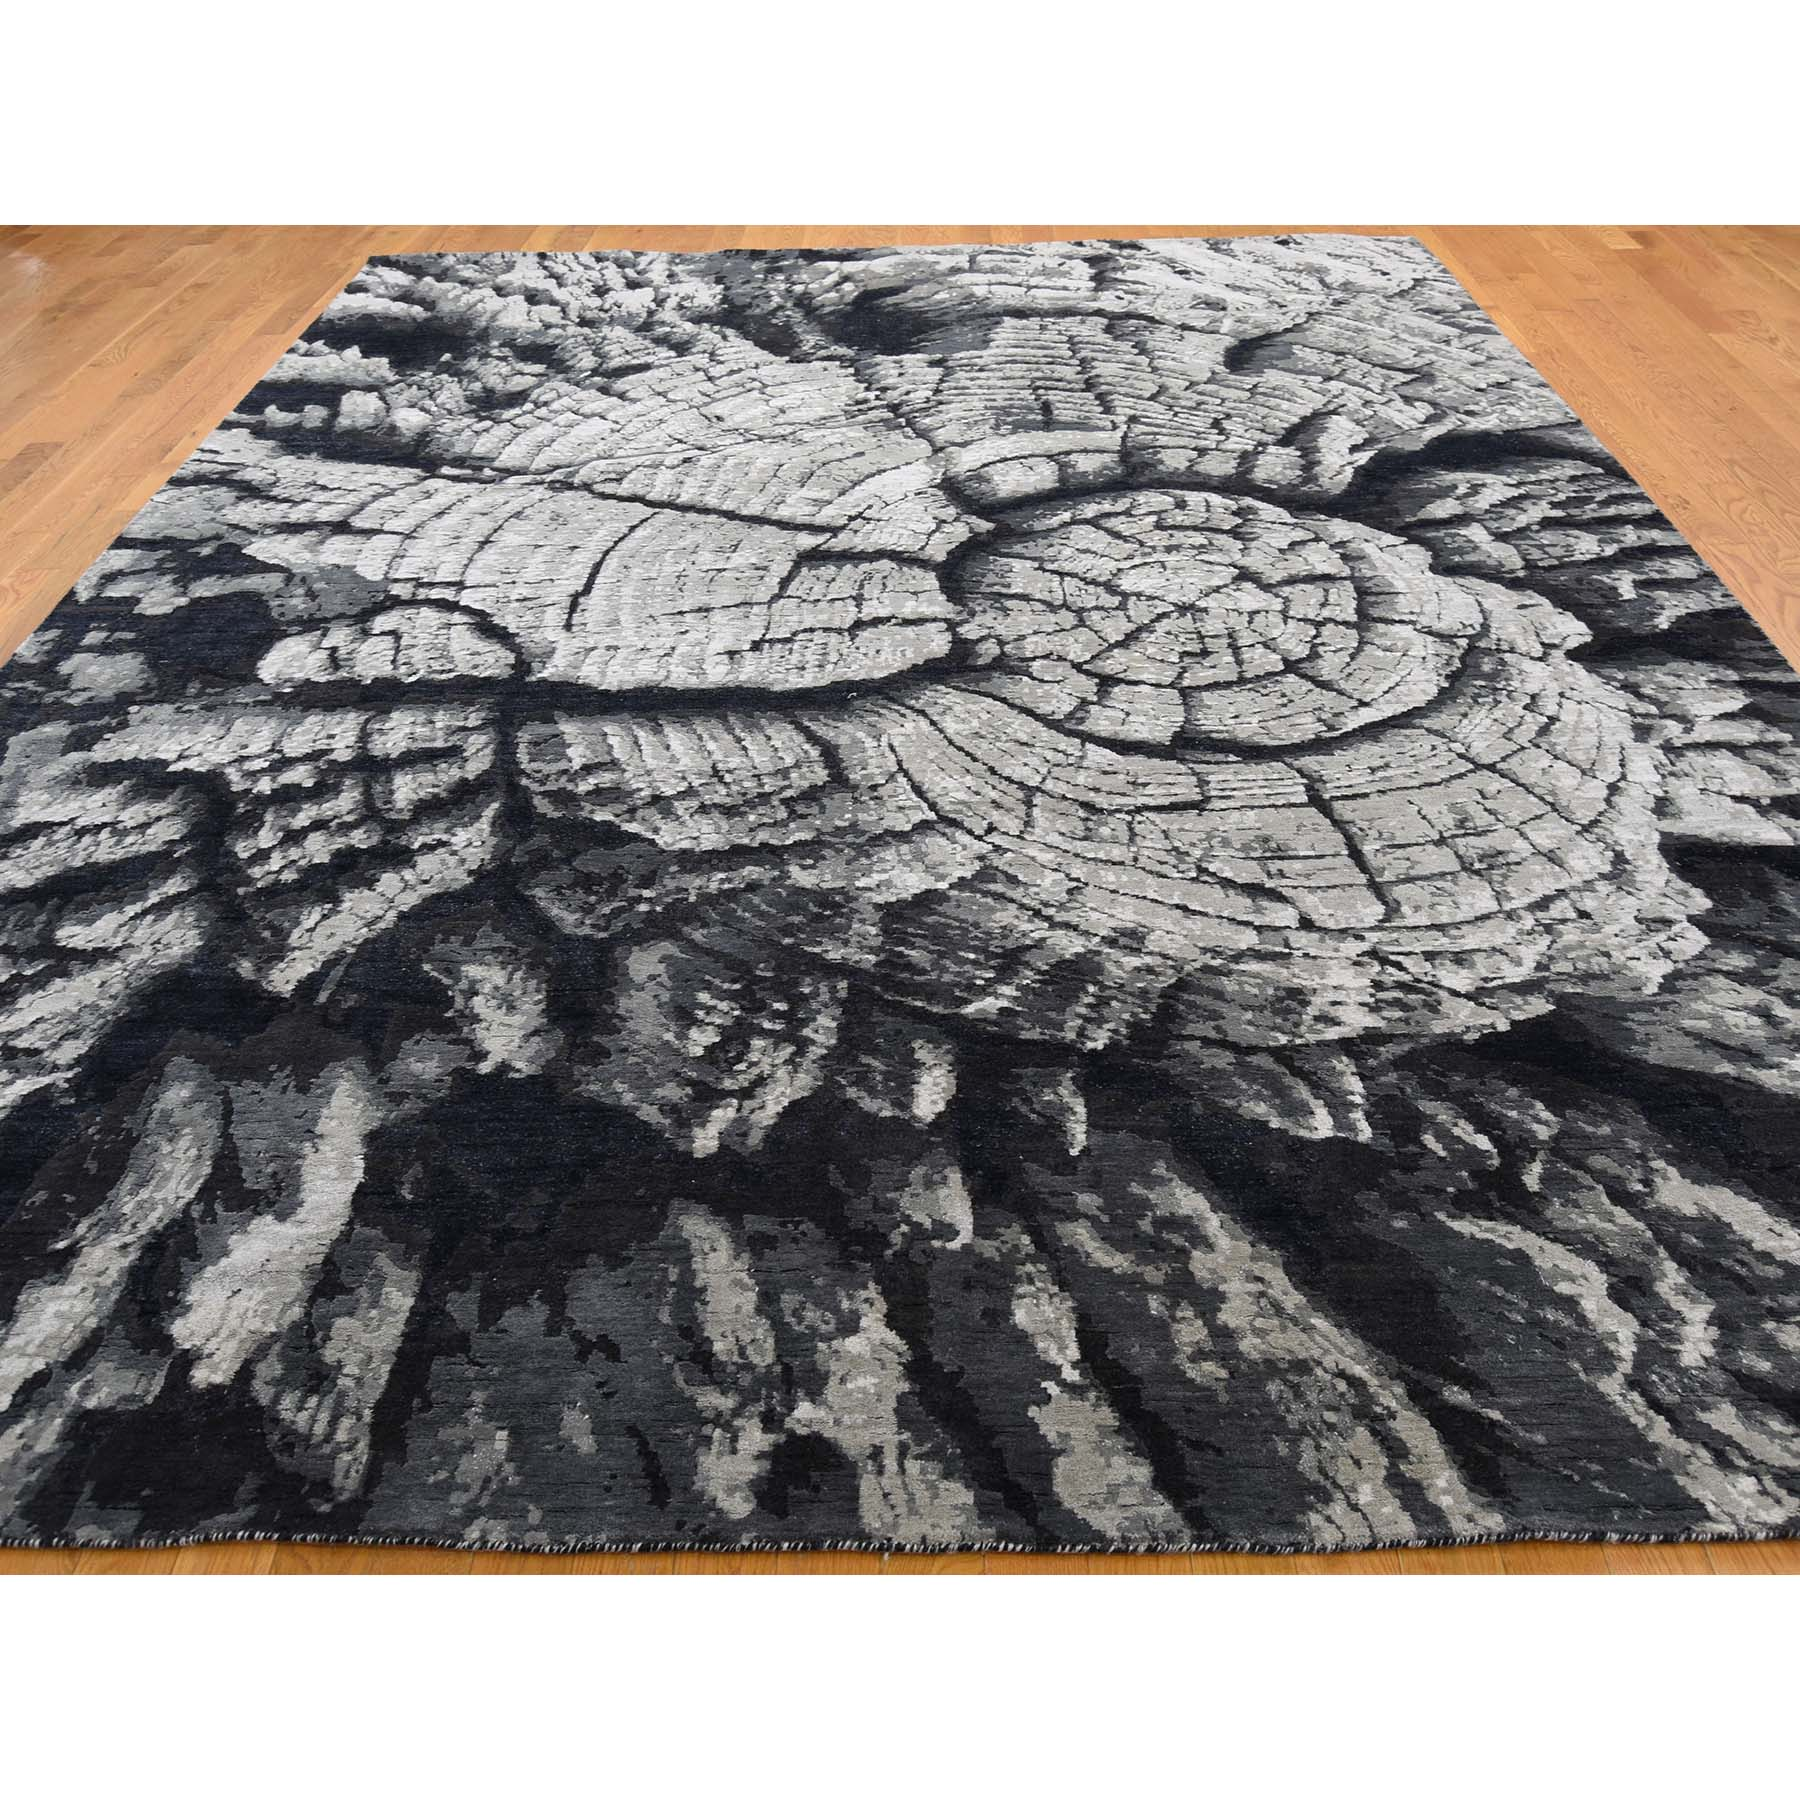 9-x12- Tree Bark Wool And Silk Abstract Design With Black and Grey Hand-Knotted Oriental Rug